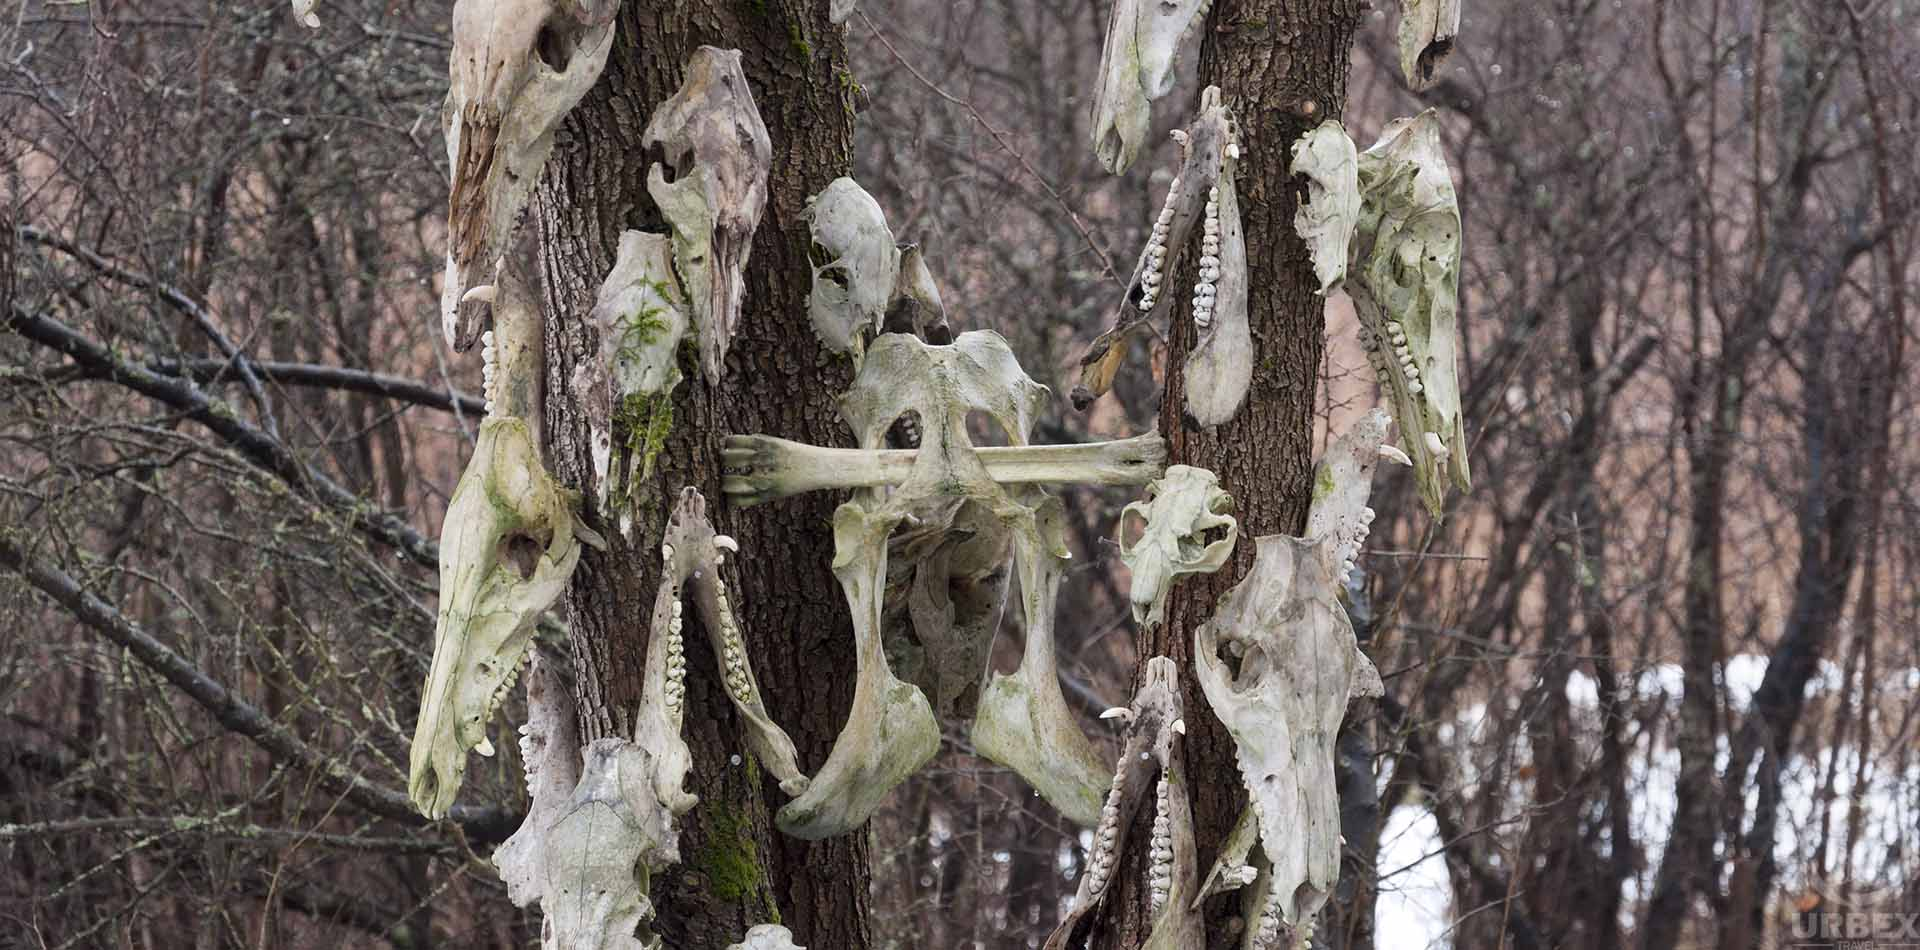 Abandoned animal totem in the forest